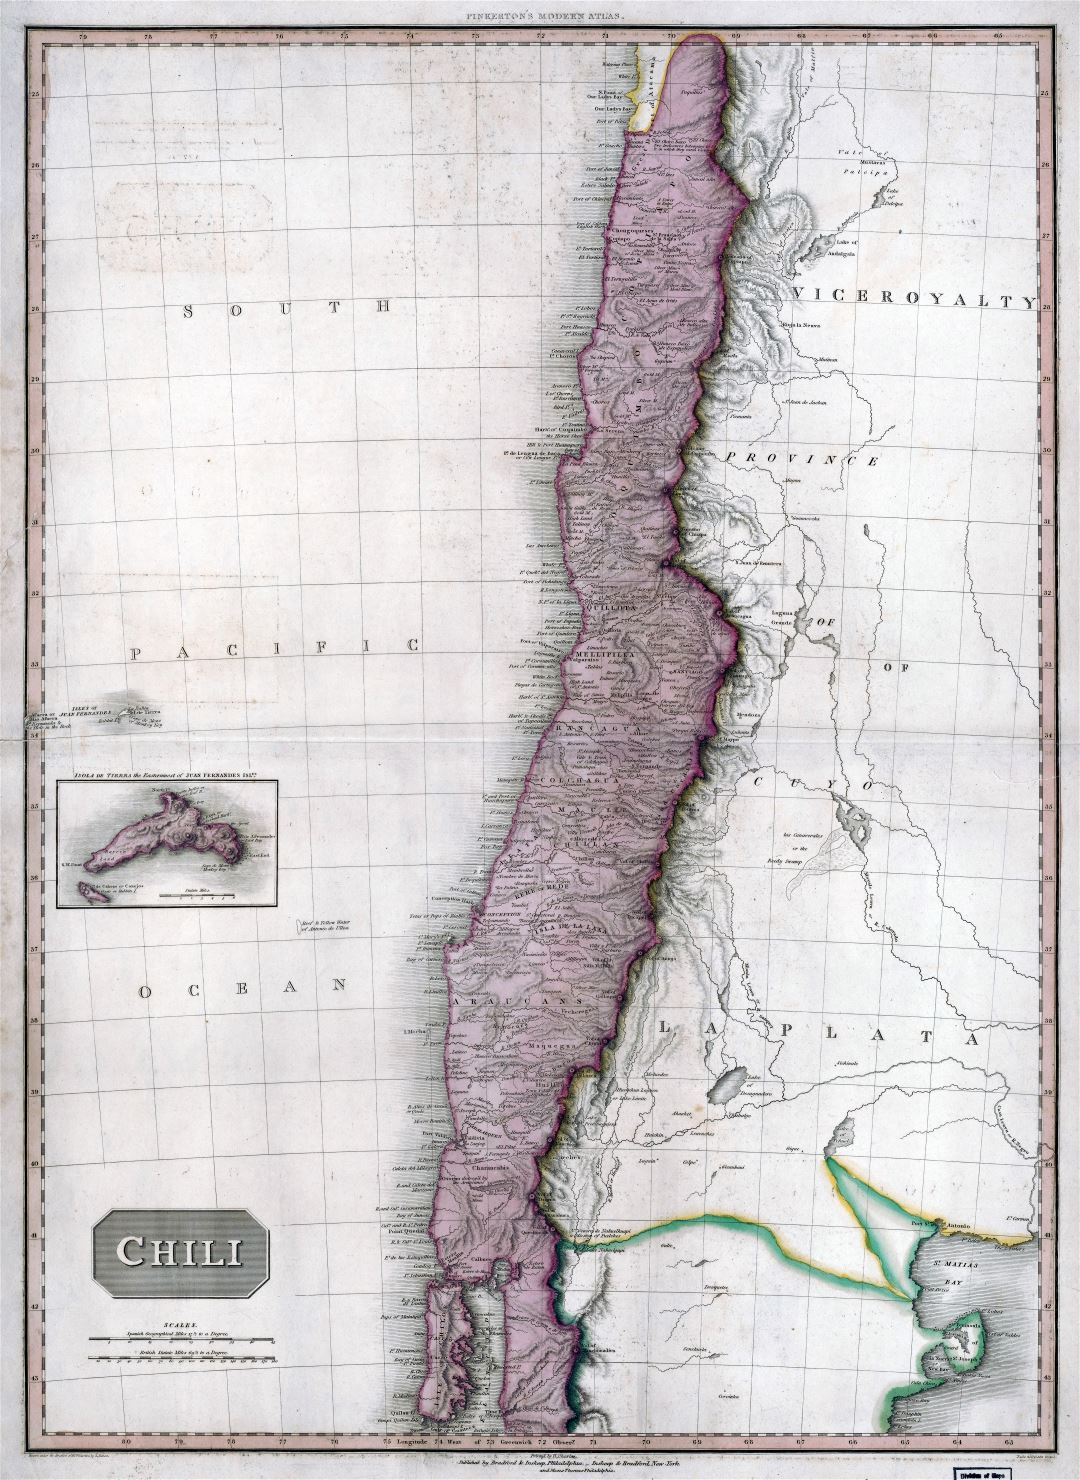 Large scale vintage map of Chile with other marks - 1818